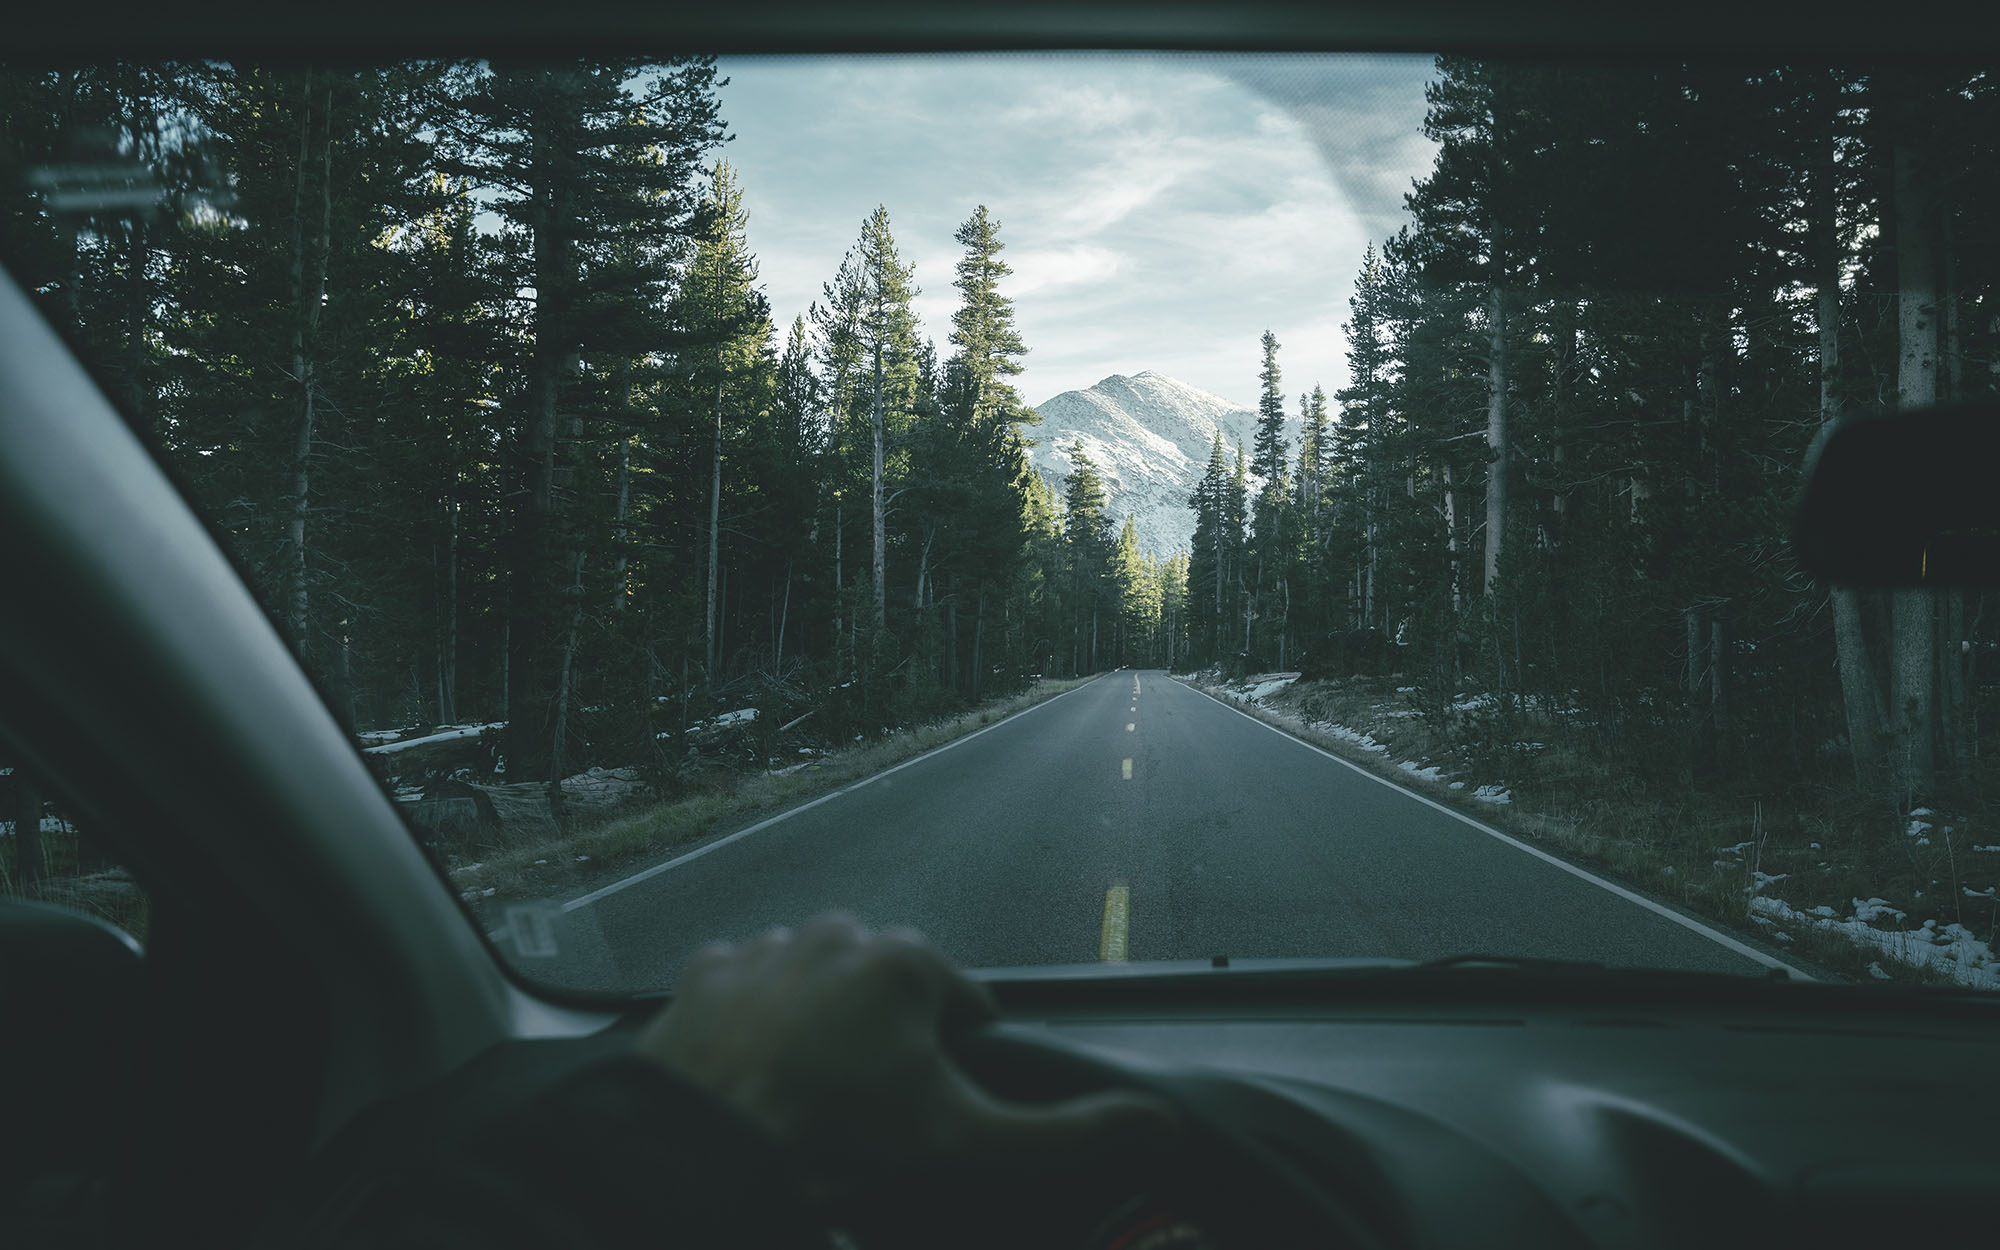 Road © Max Muench